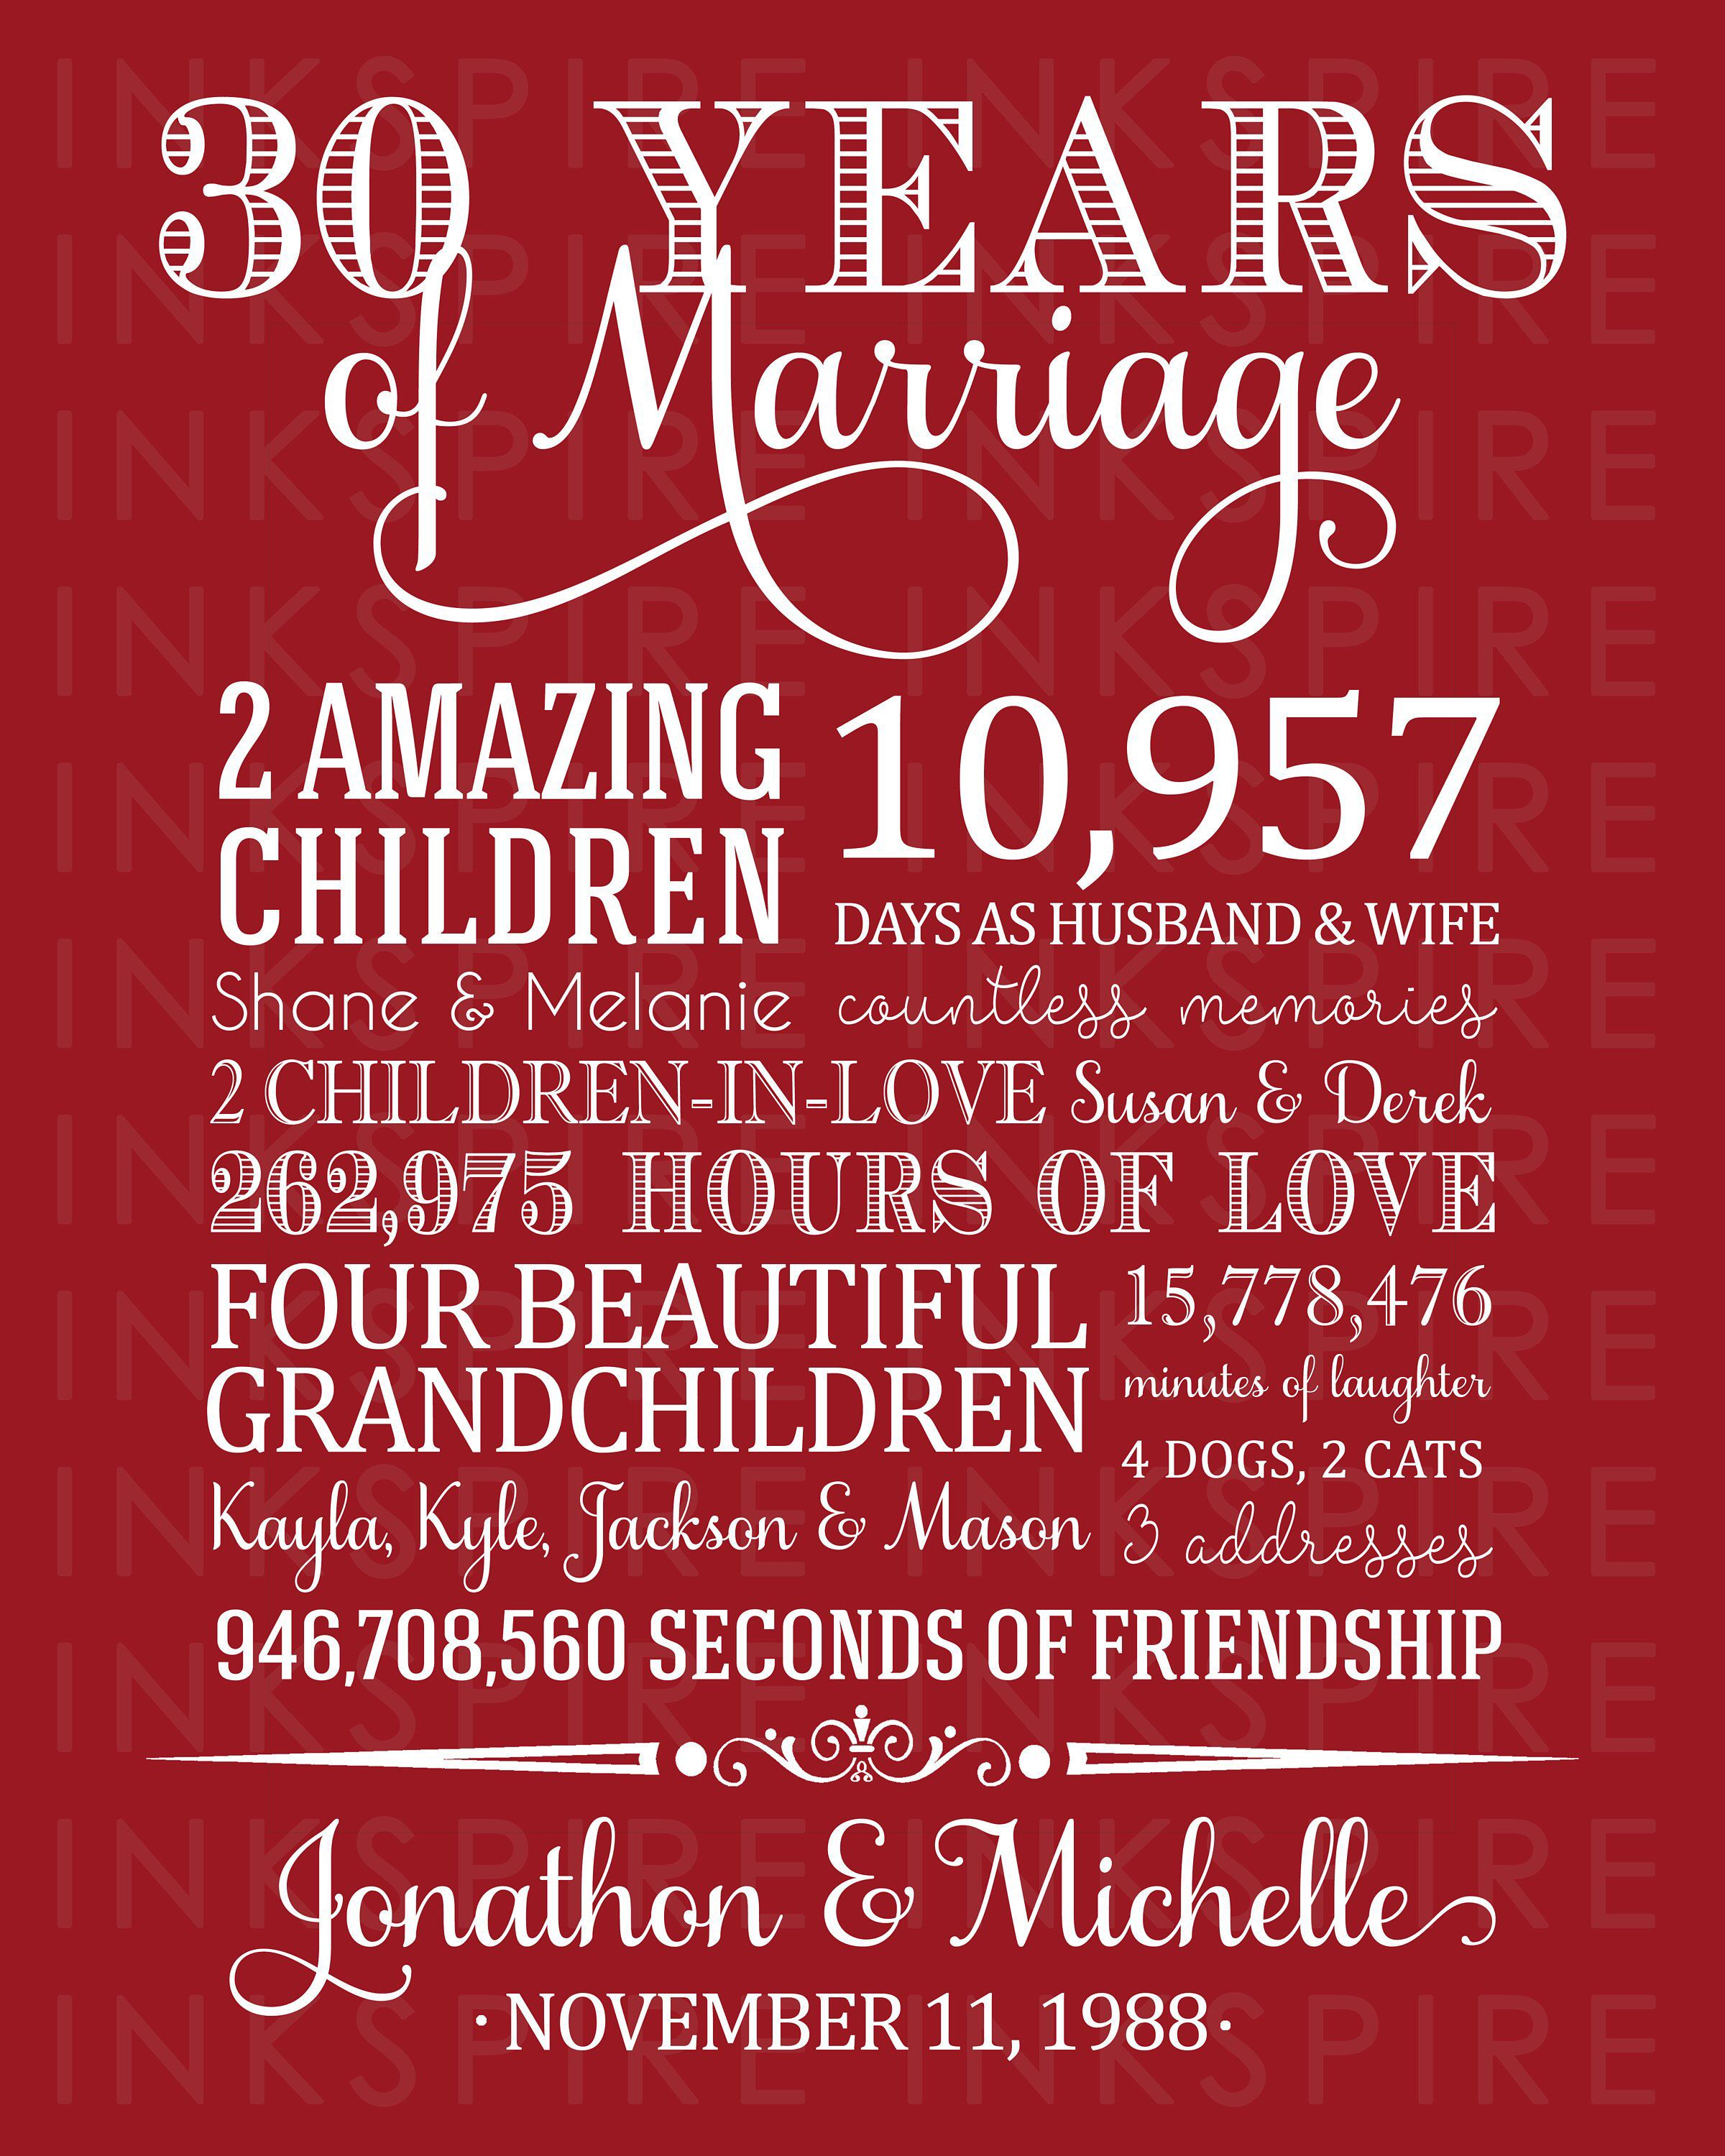 30 Year Wedding Anniversary Gift Ideas For Parents: 30th Anniversary Gift For Parents